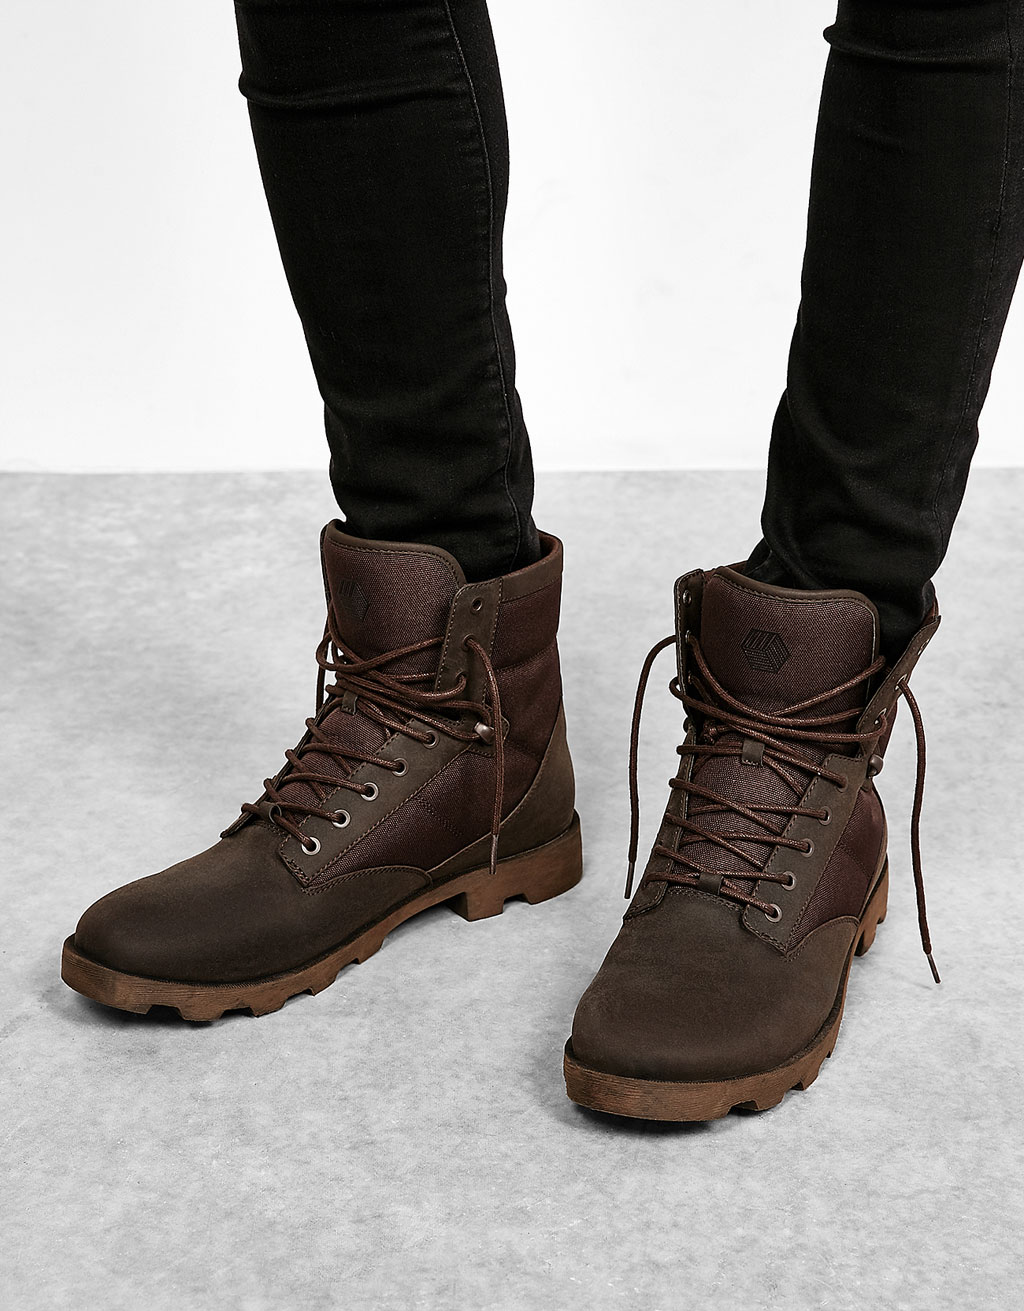 Men's combined cleated boots